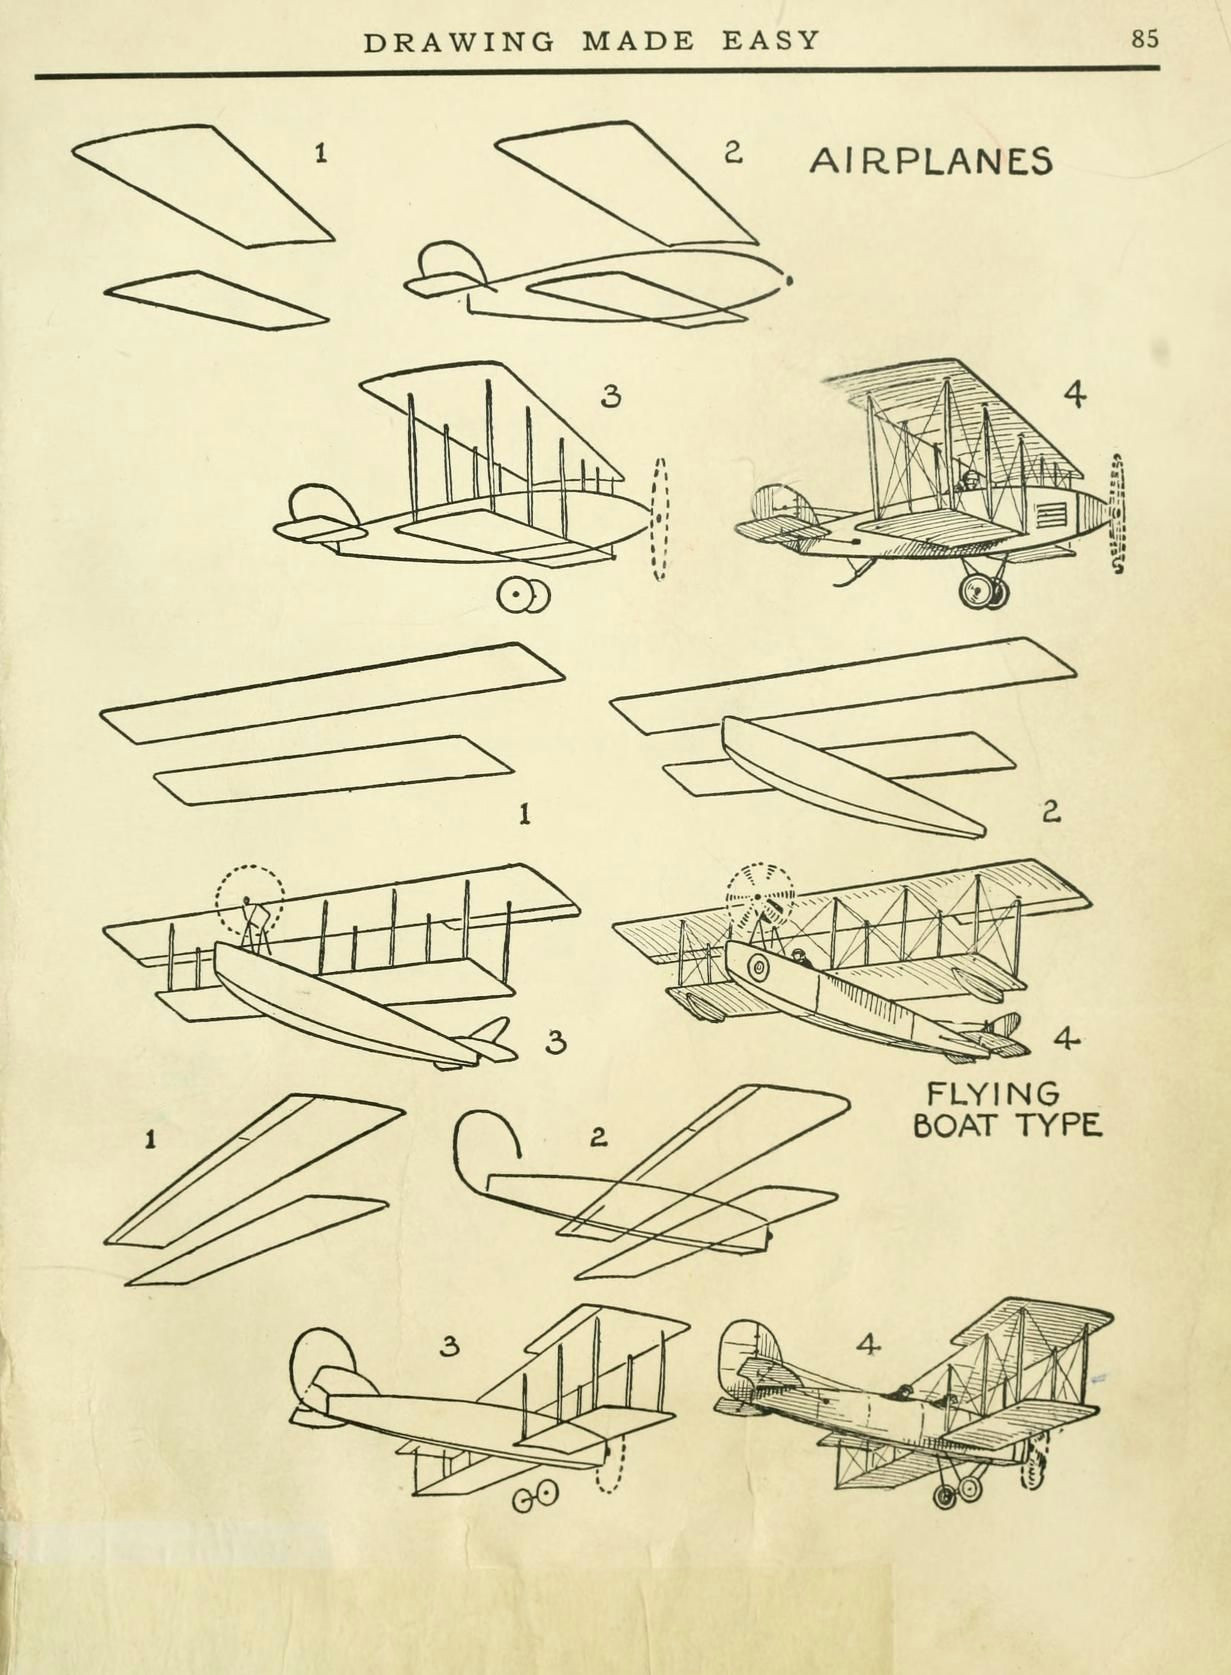 today s drawing class featuring lessons from the 1921 vintage book drawing made easy a helpful book for young artists by e lutz